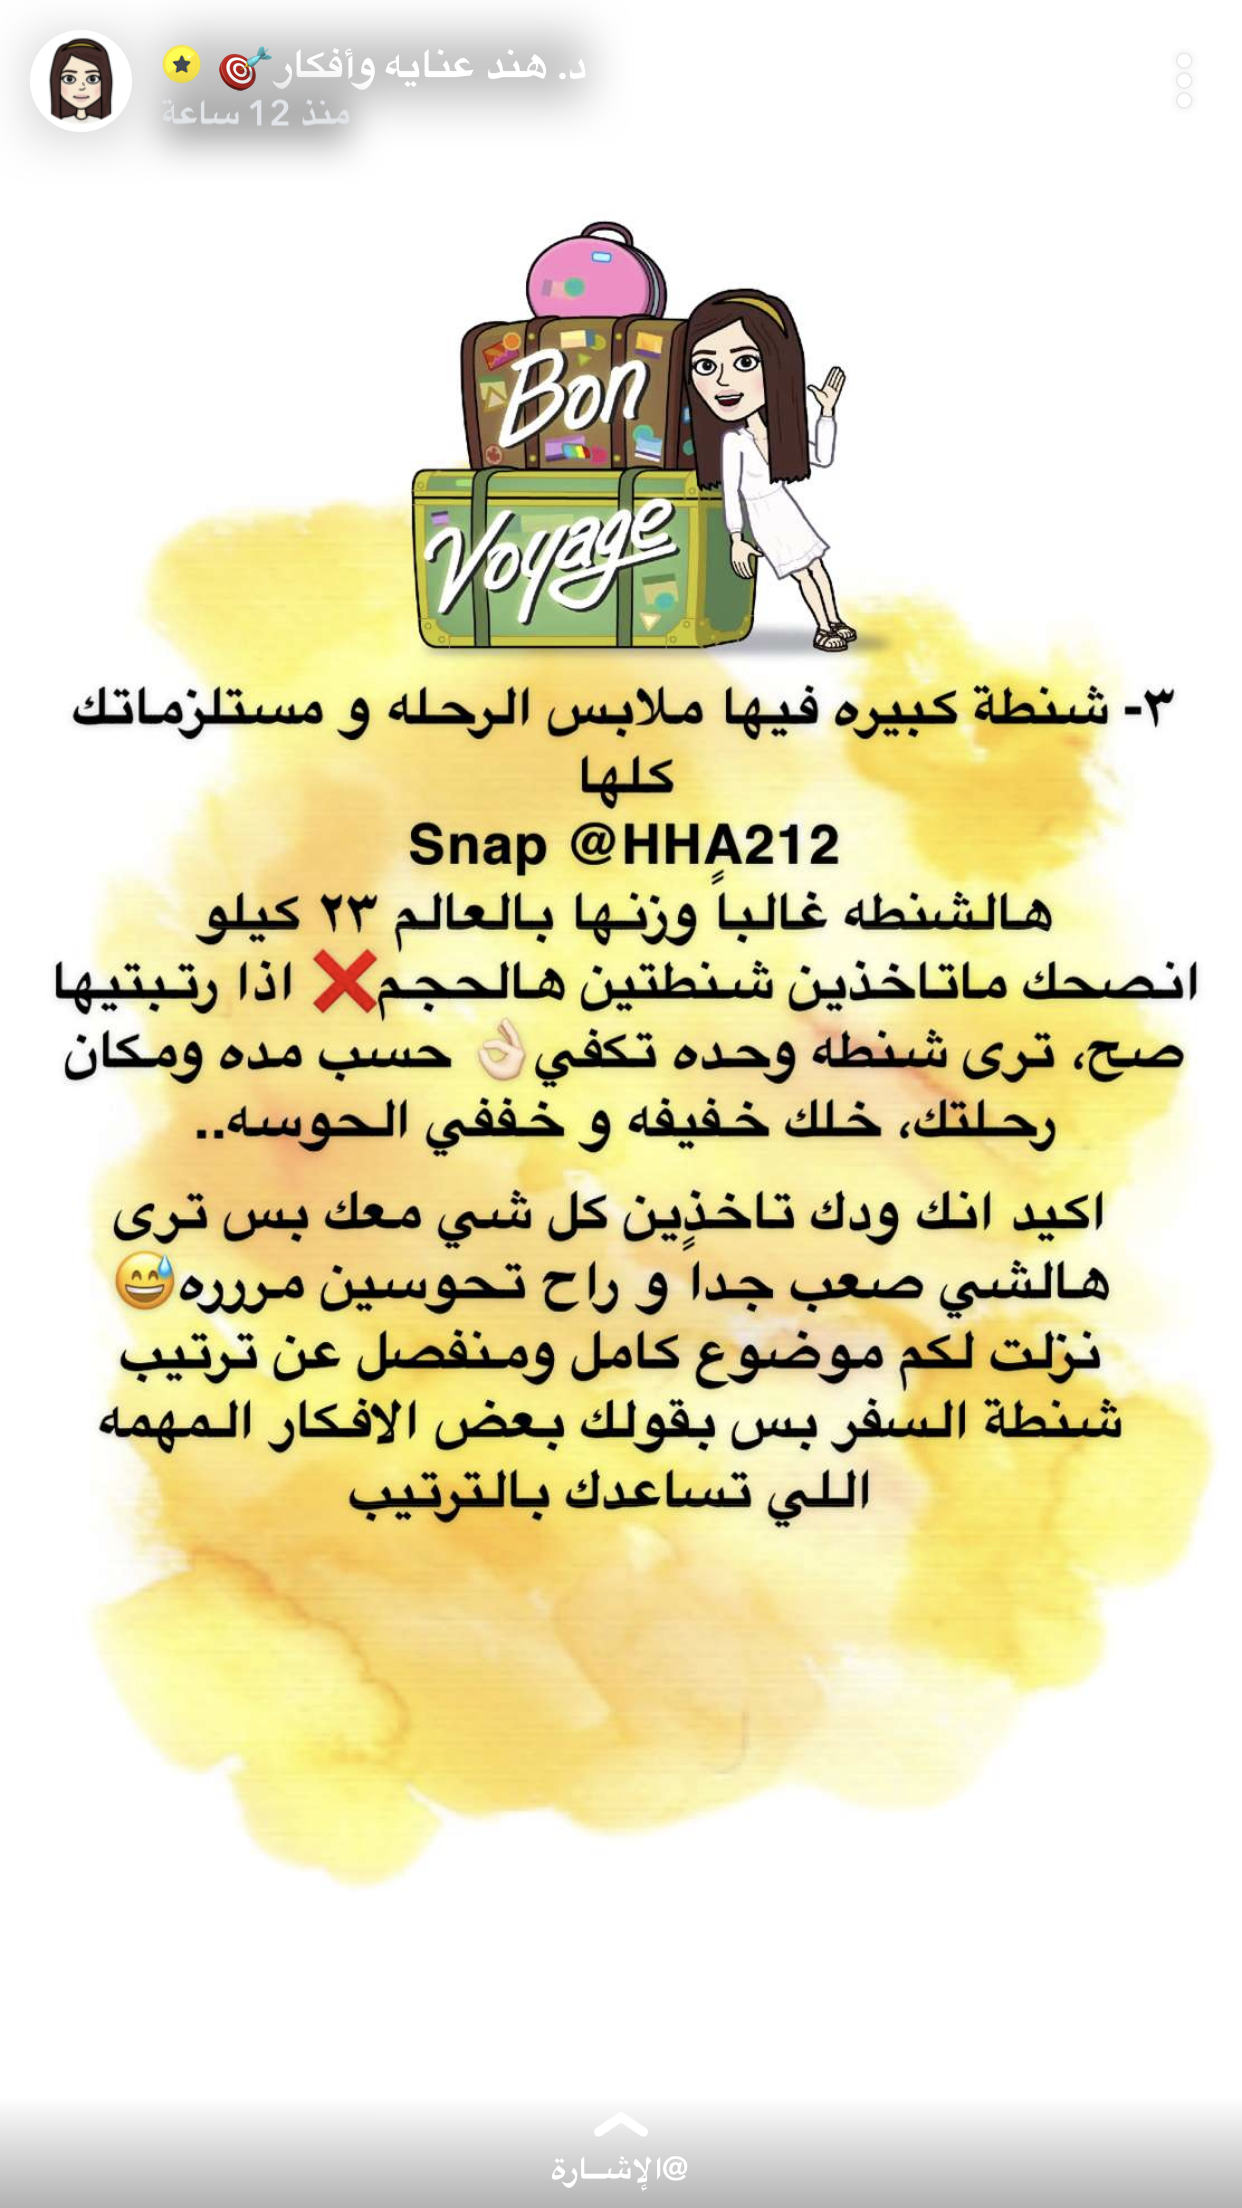 Pin By Dr Eman On ترتيبات لشهر العسل Bride Preparation Travel And Tourism How To Better Yourself